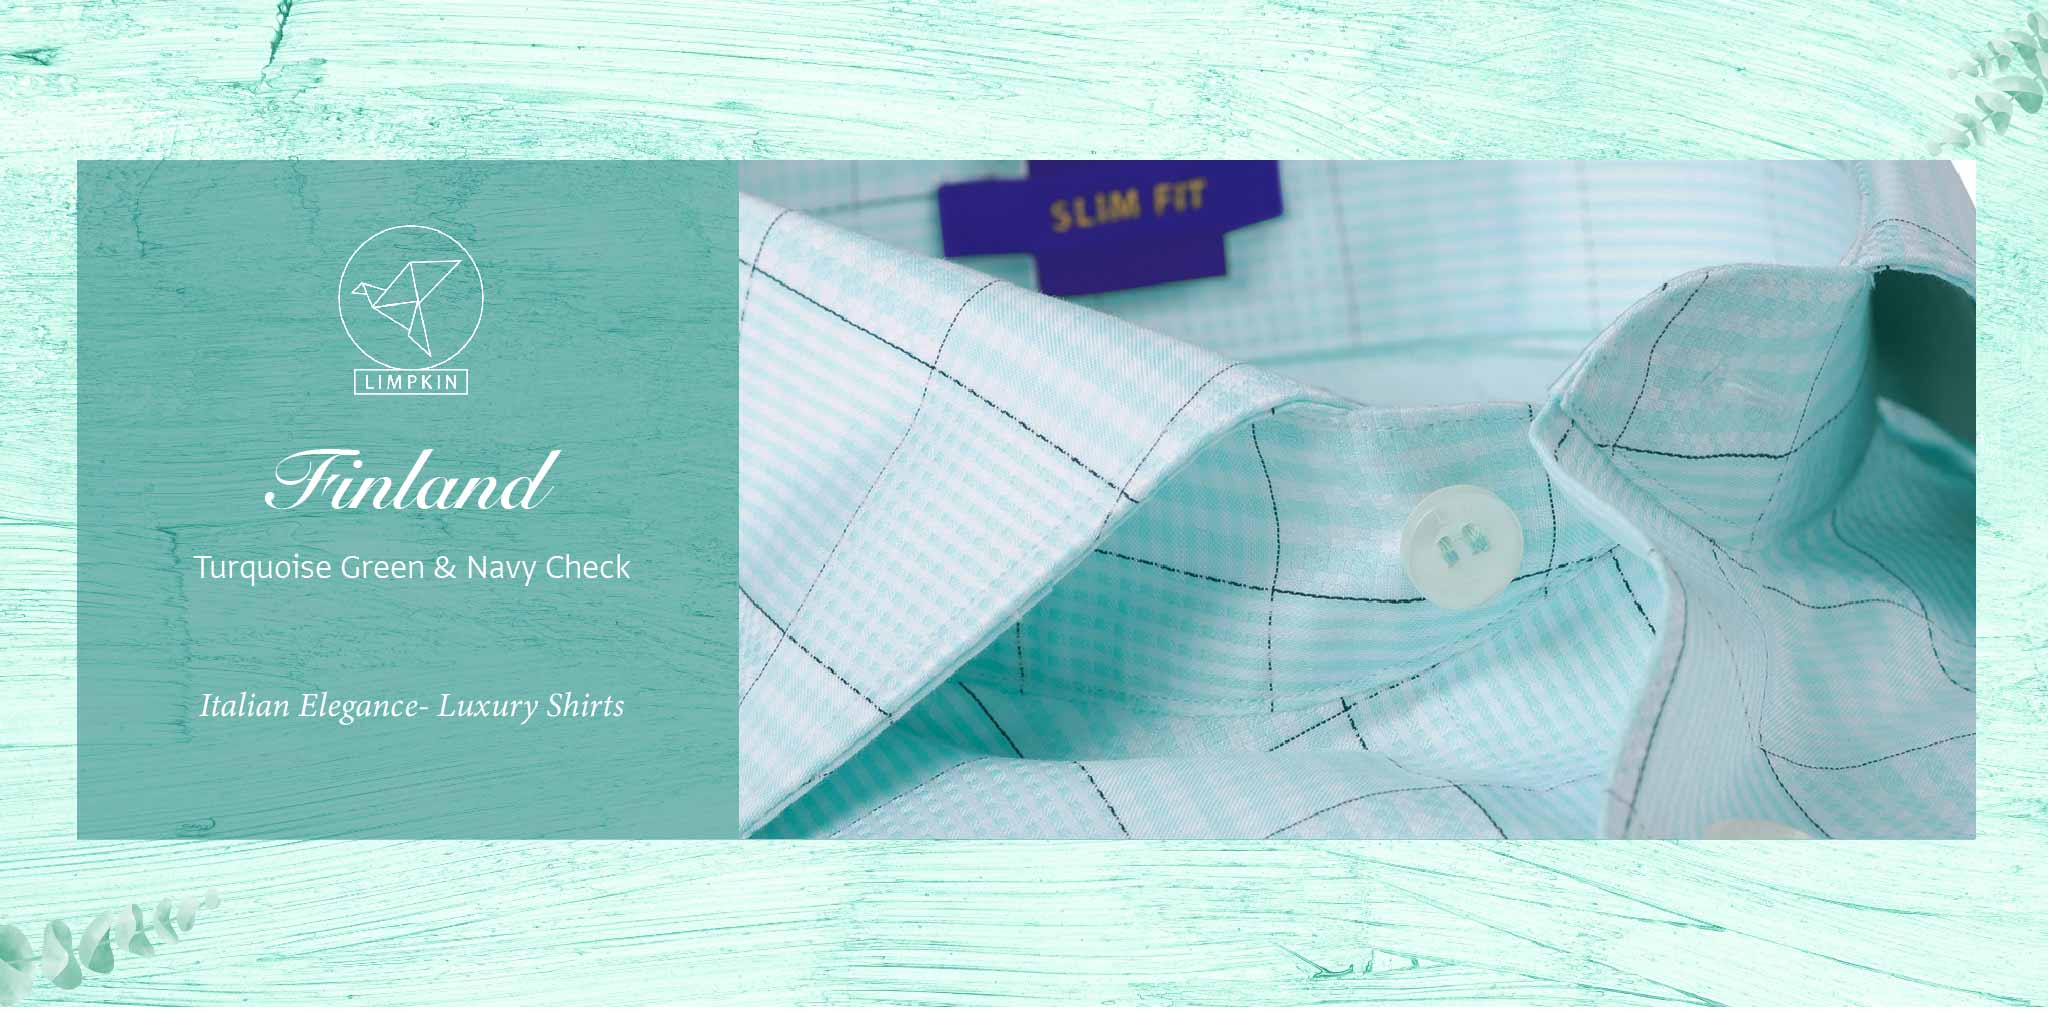 Finland- Turquoise Green & Navy Check- 2 Ply Pure Egyptian Giza Cotton- Delivery from 16th Jan - Banner